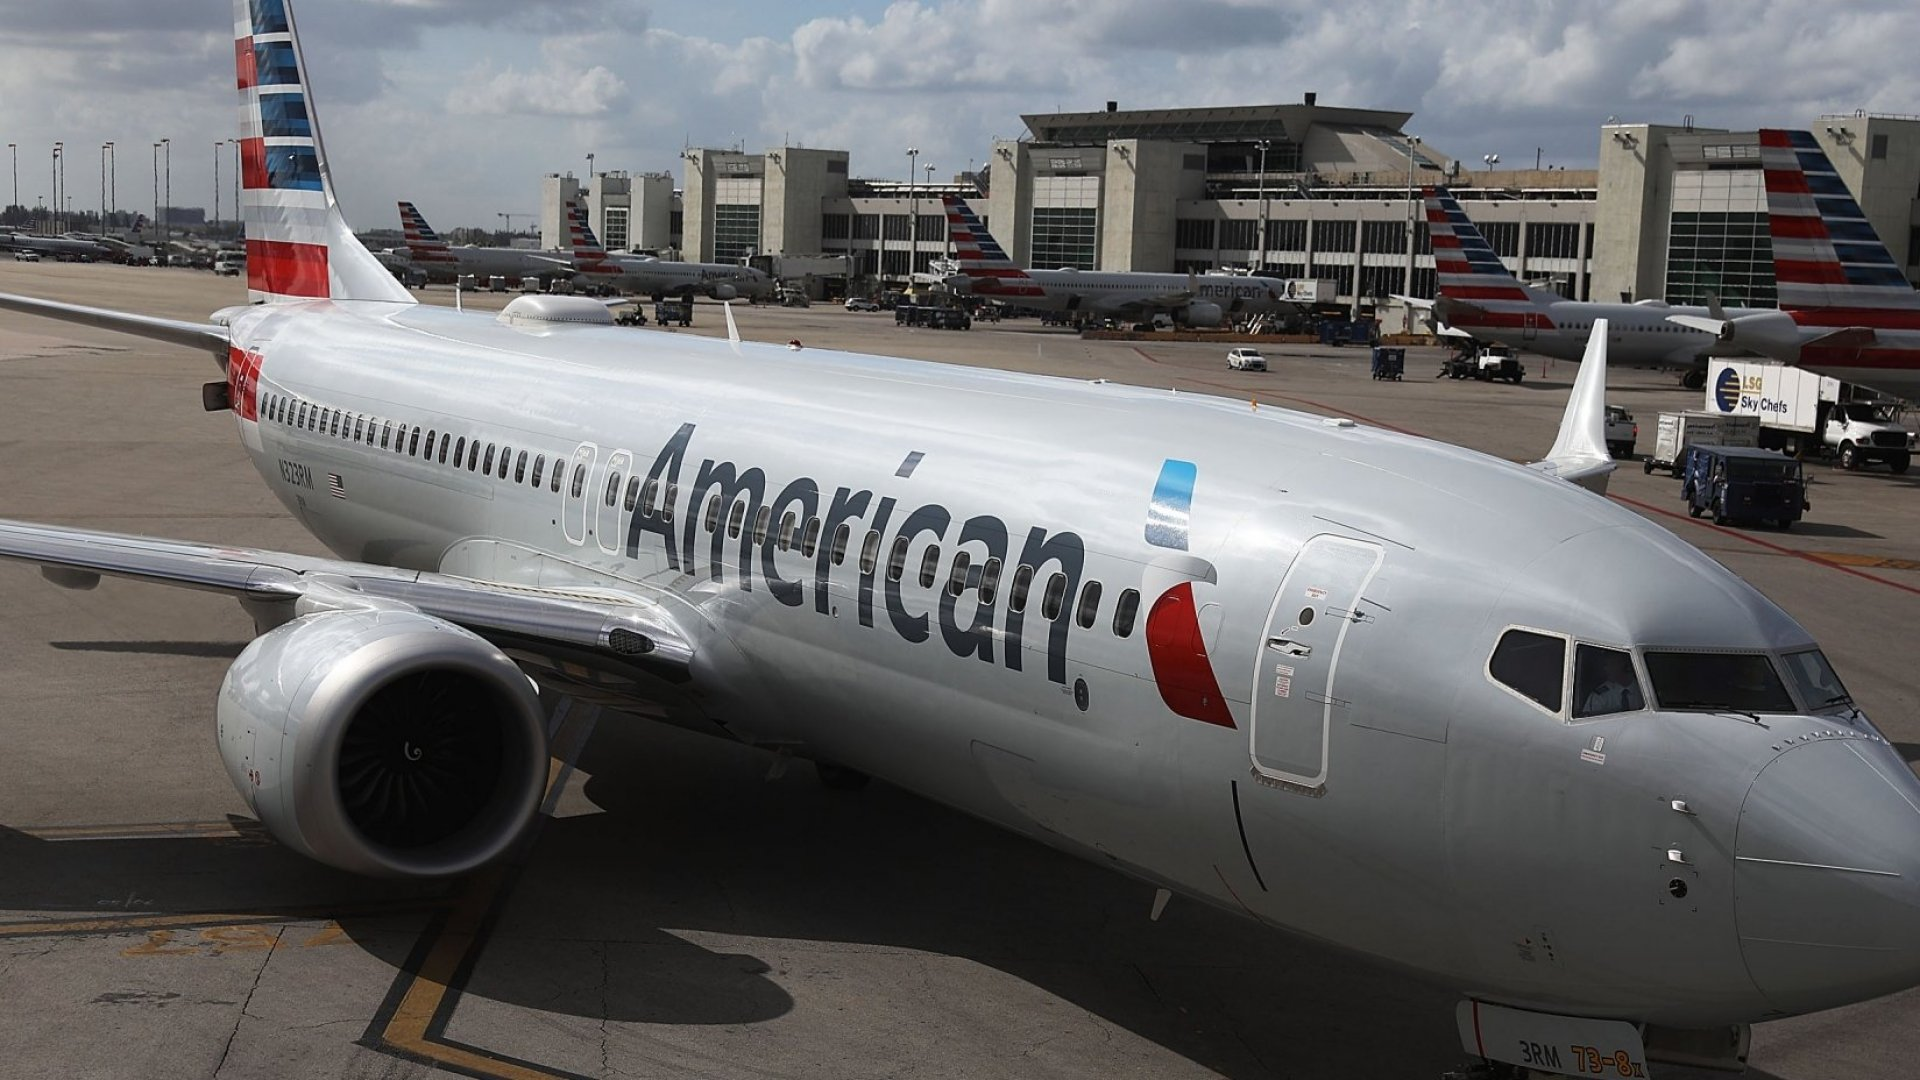 American Airlines' CEO Just Announced That 115 Flights Will Be Canceled Each Day Due to Boeing 737 MAX Fiasco